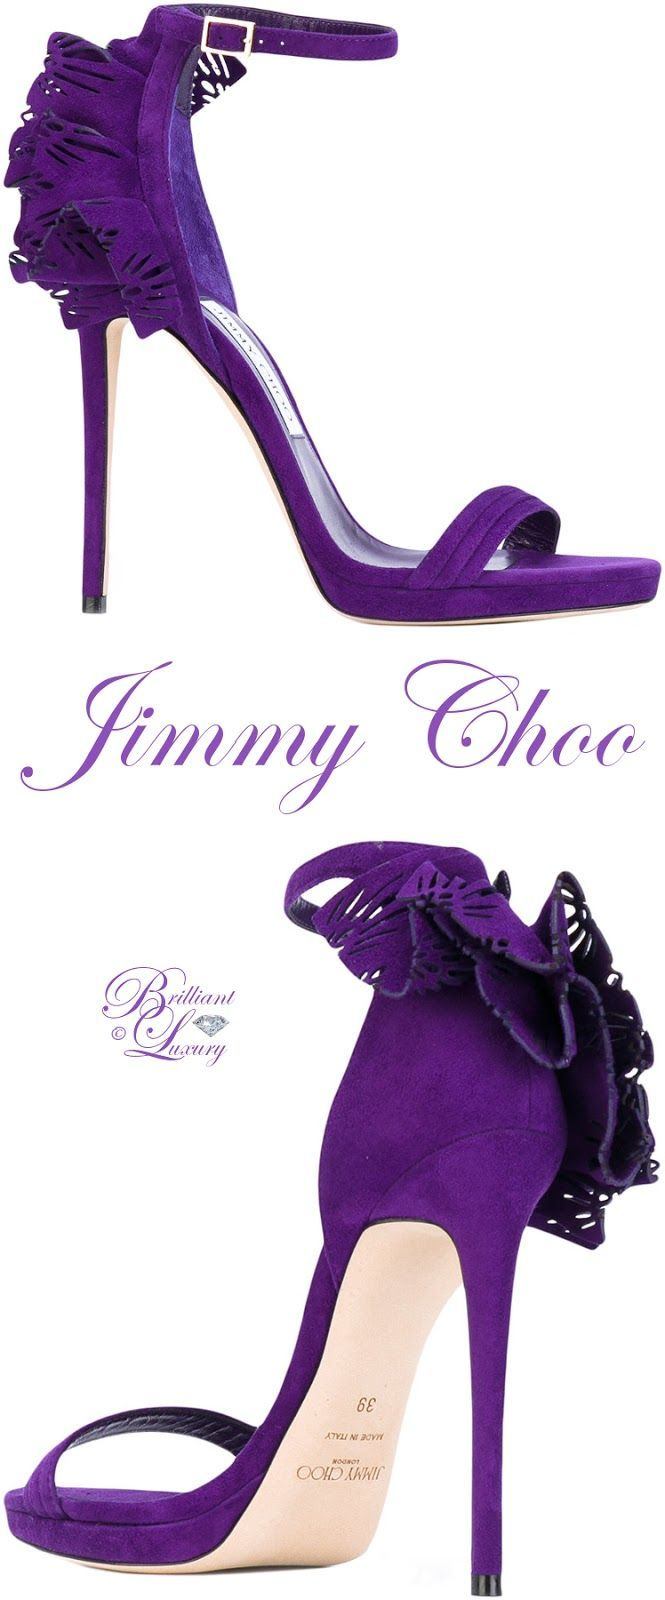 Brilliant Luxury by Emmy DE ♦ Jimmy Choo Kelly Sandals. Not really a fan of purple, but the style ❣️